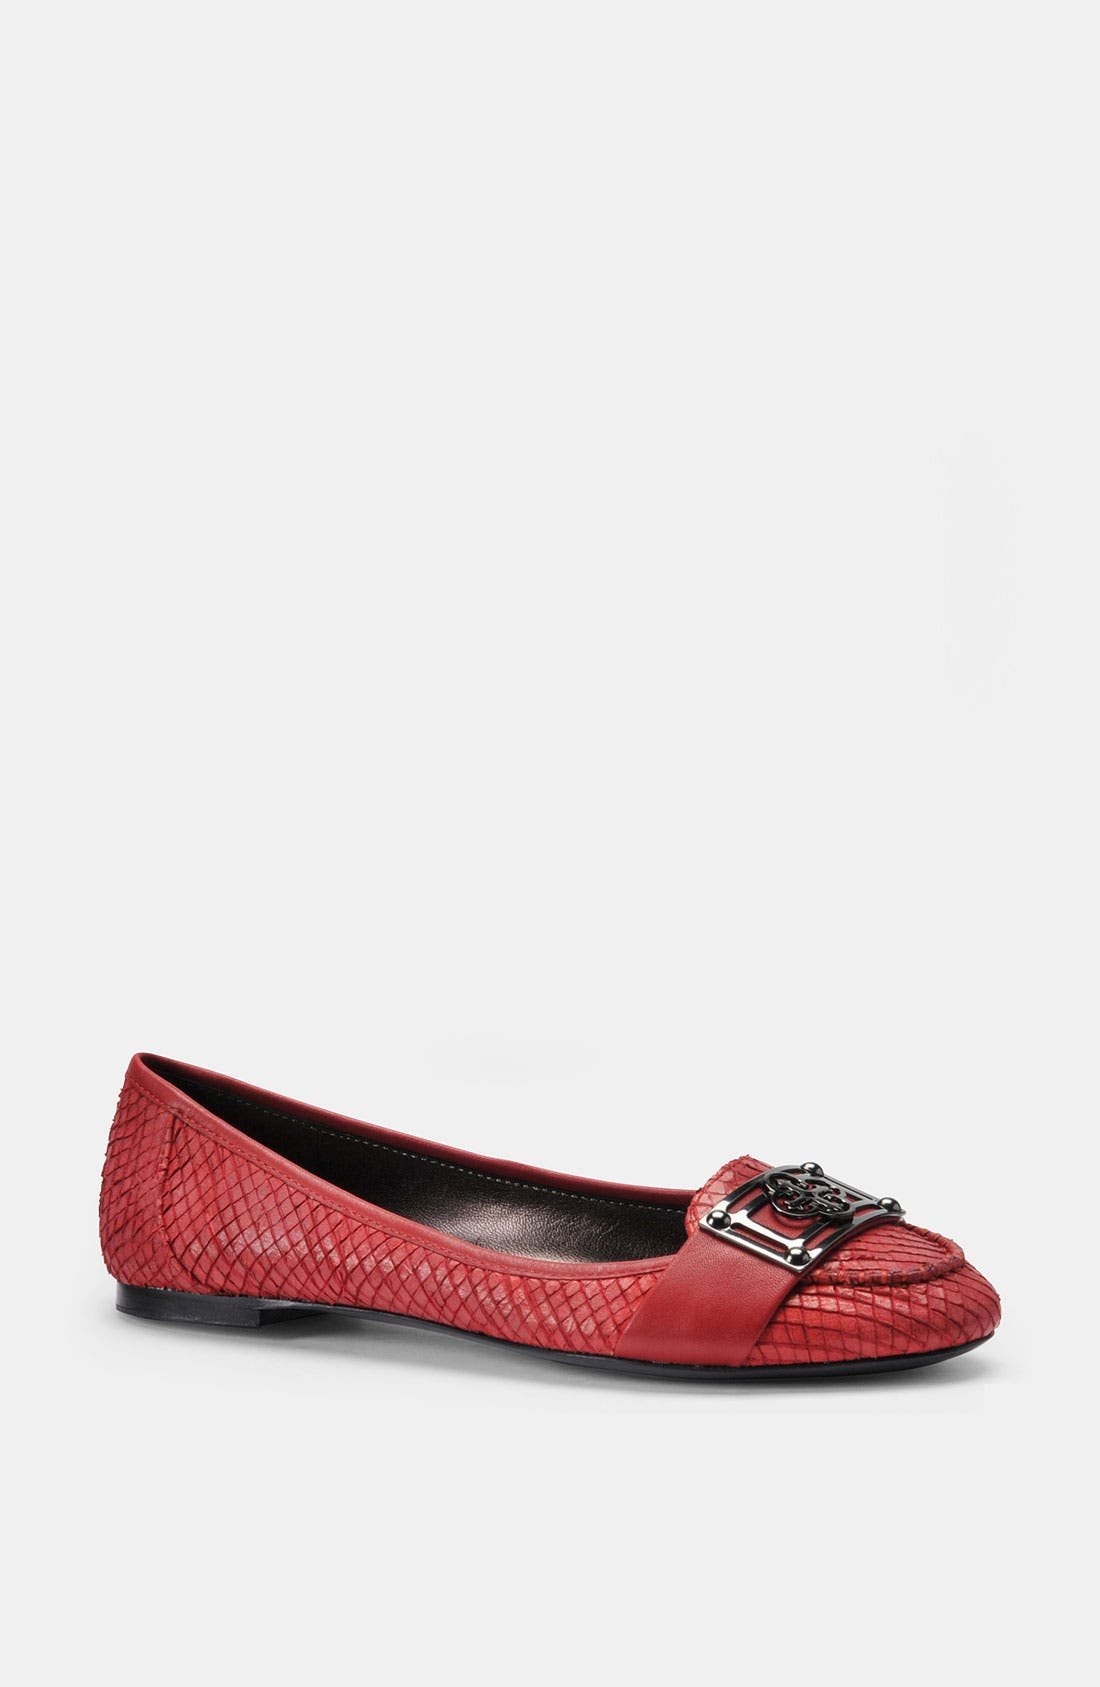 Main Image - Isolá 'Brenna' Loafer